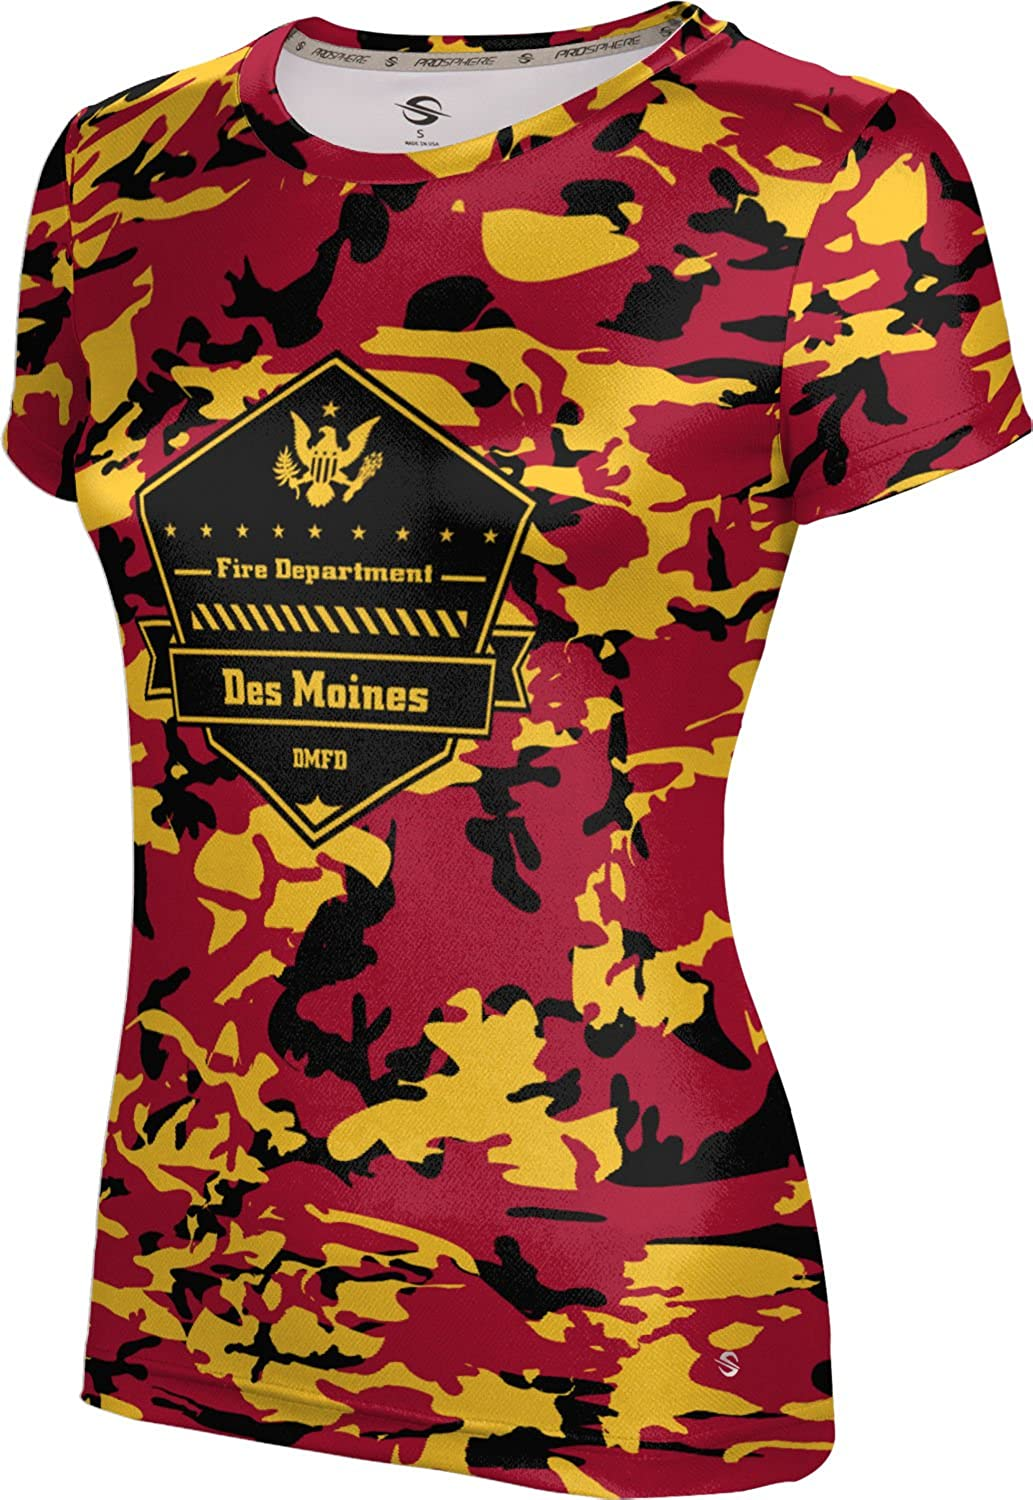 ProSphere Women's Des Moines Fire Department Camo Tech Tee